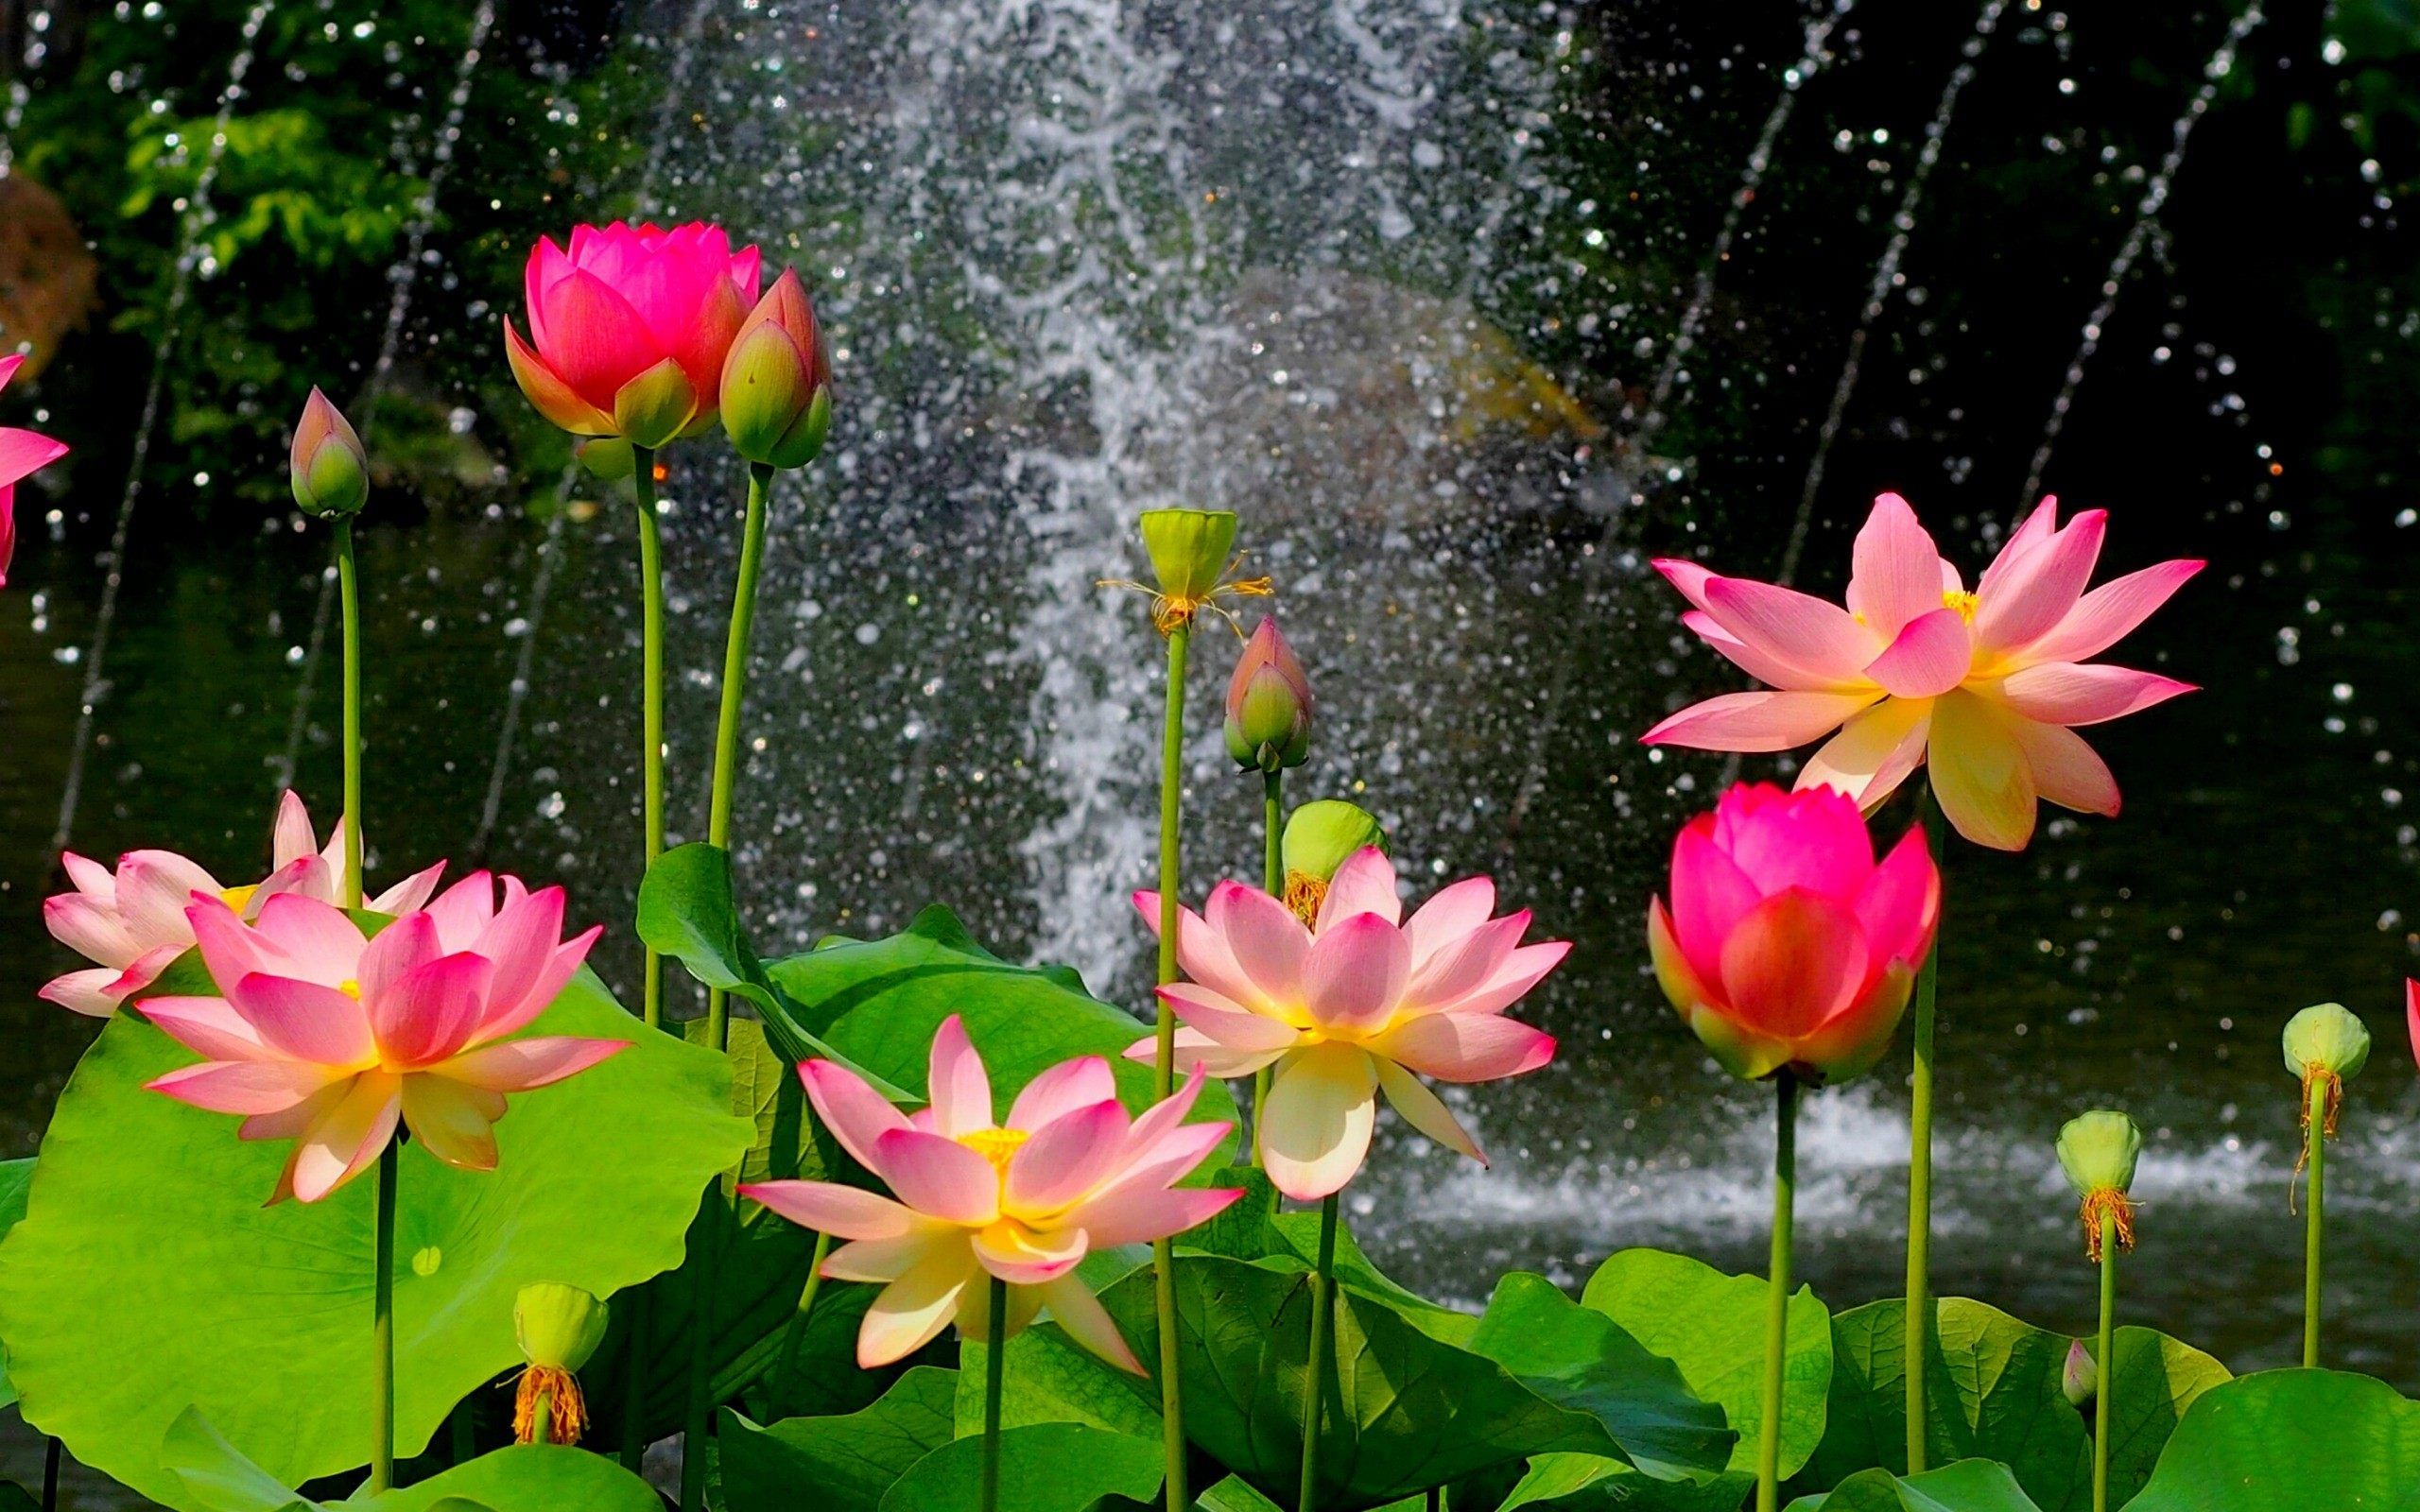 Lotus Flower Wallpapers Full Hd Free Download > SubWallpaper